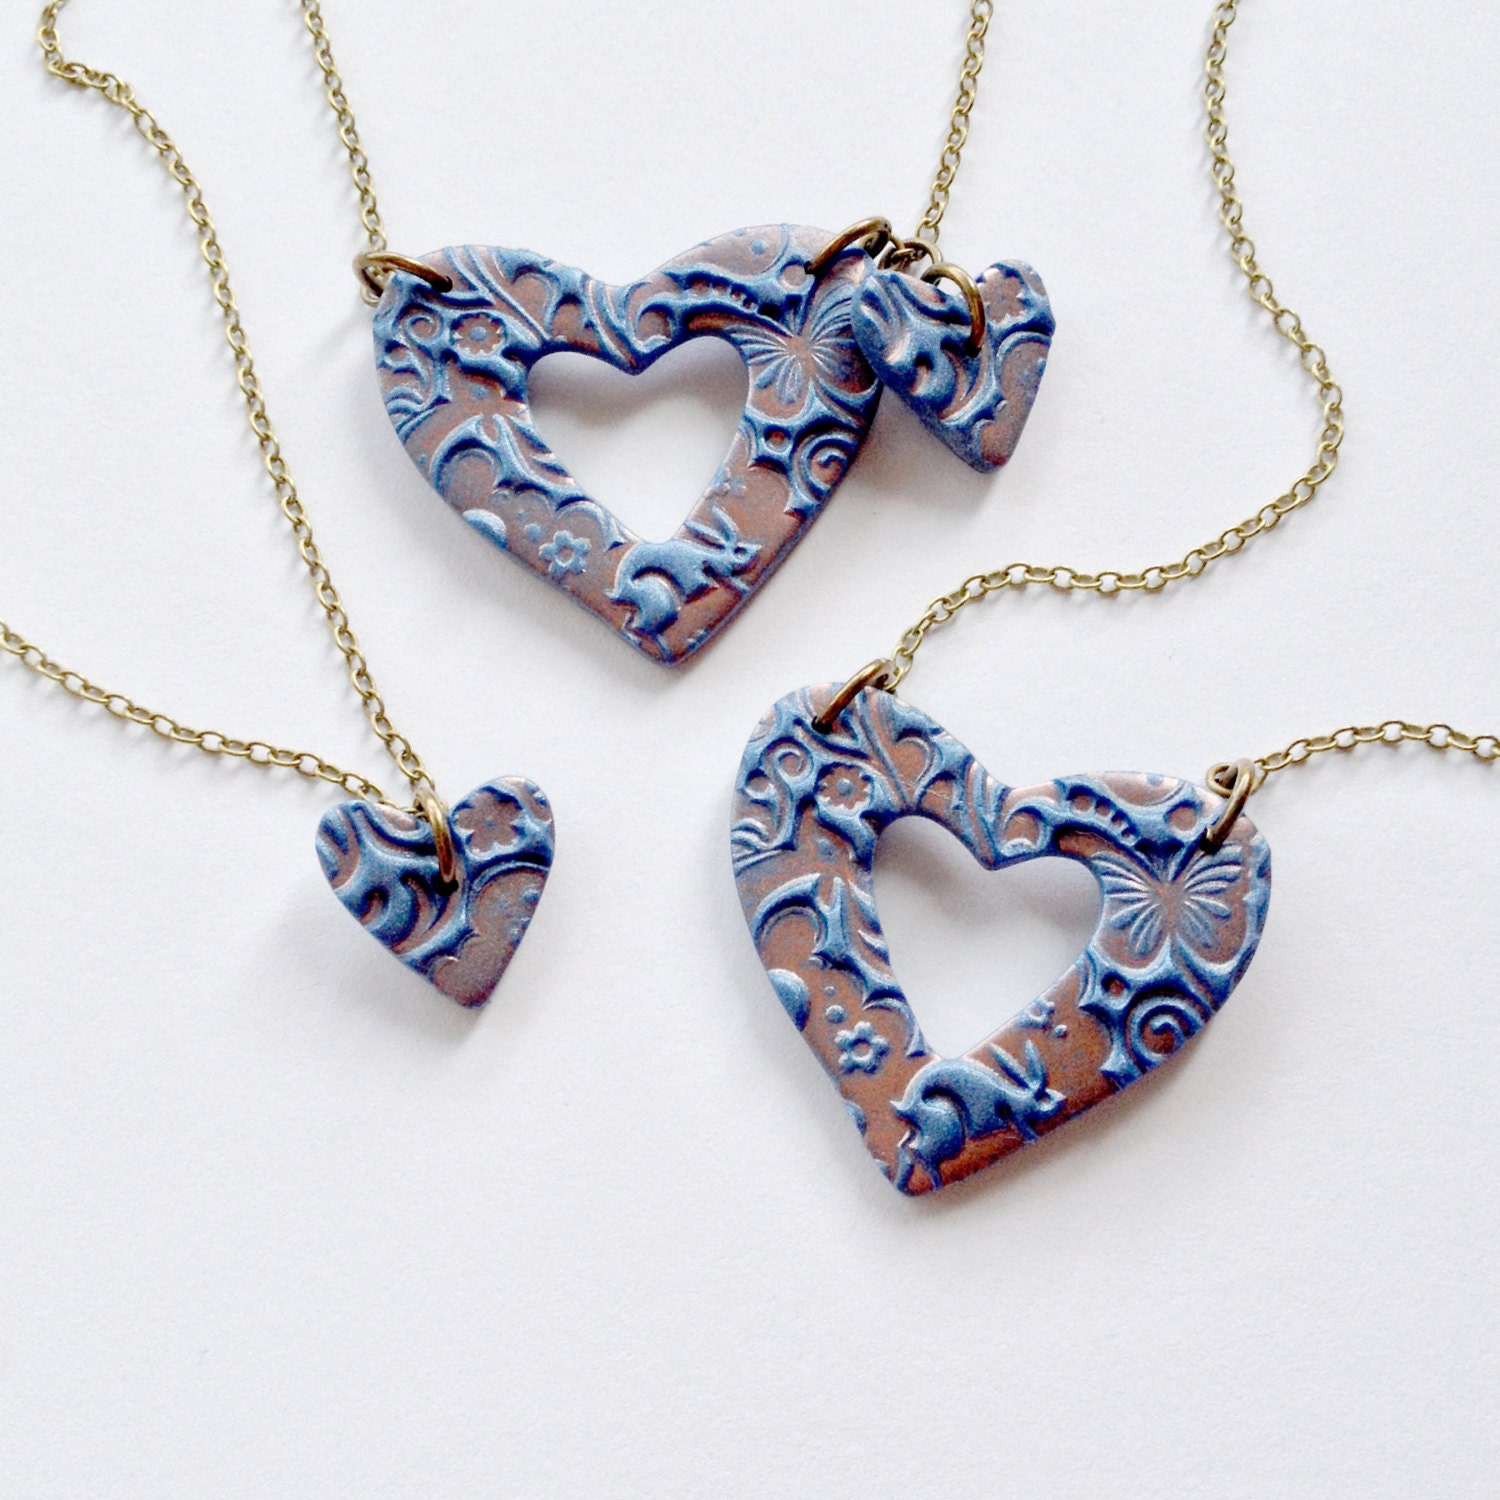 Grandmother Mother and Daughter Matching Necklace Set in